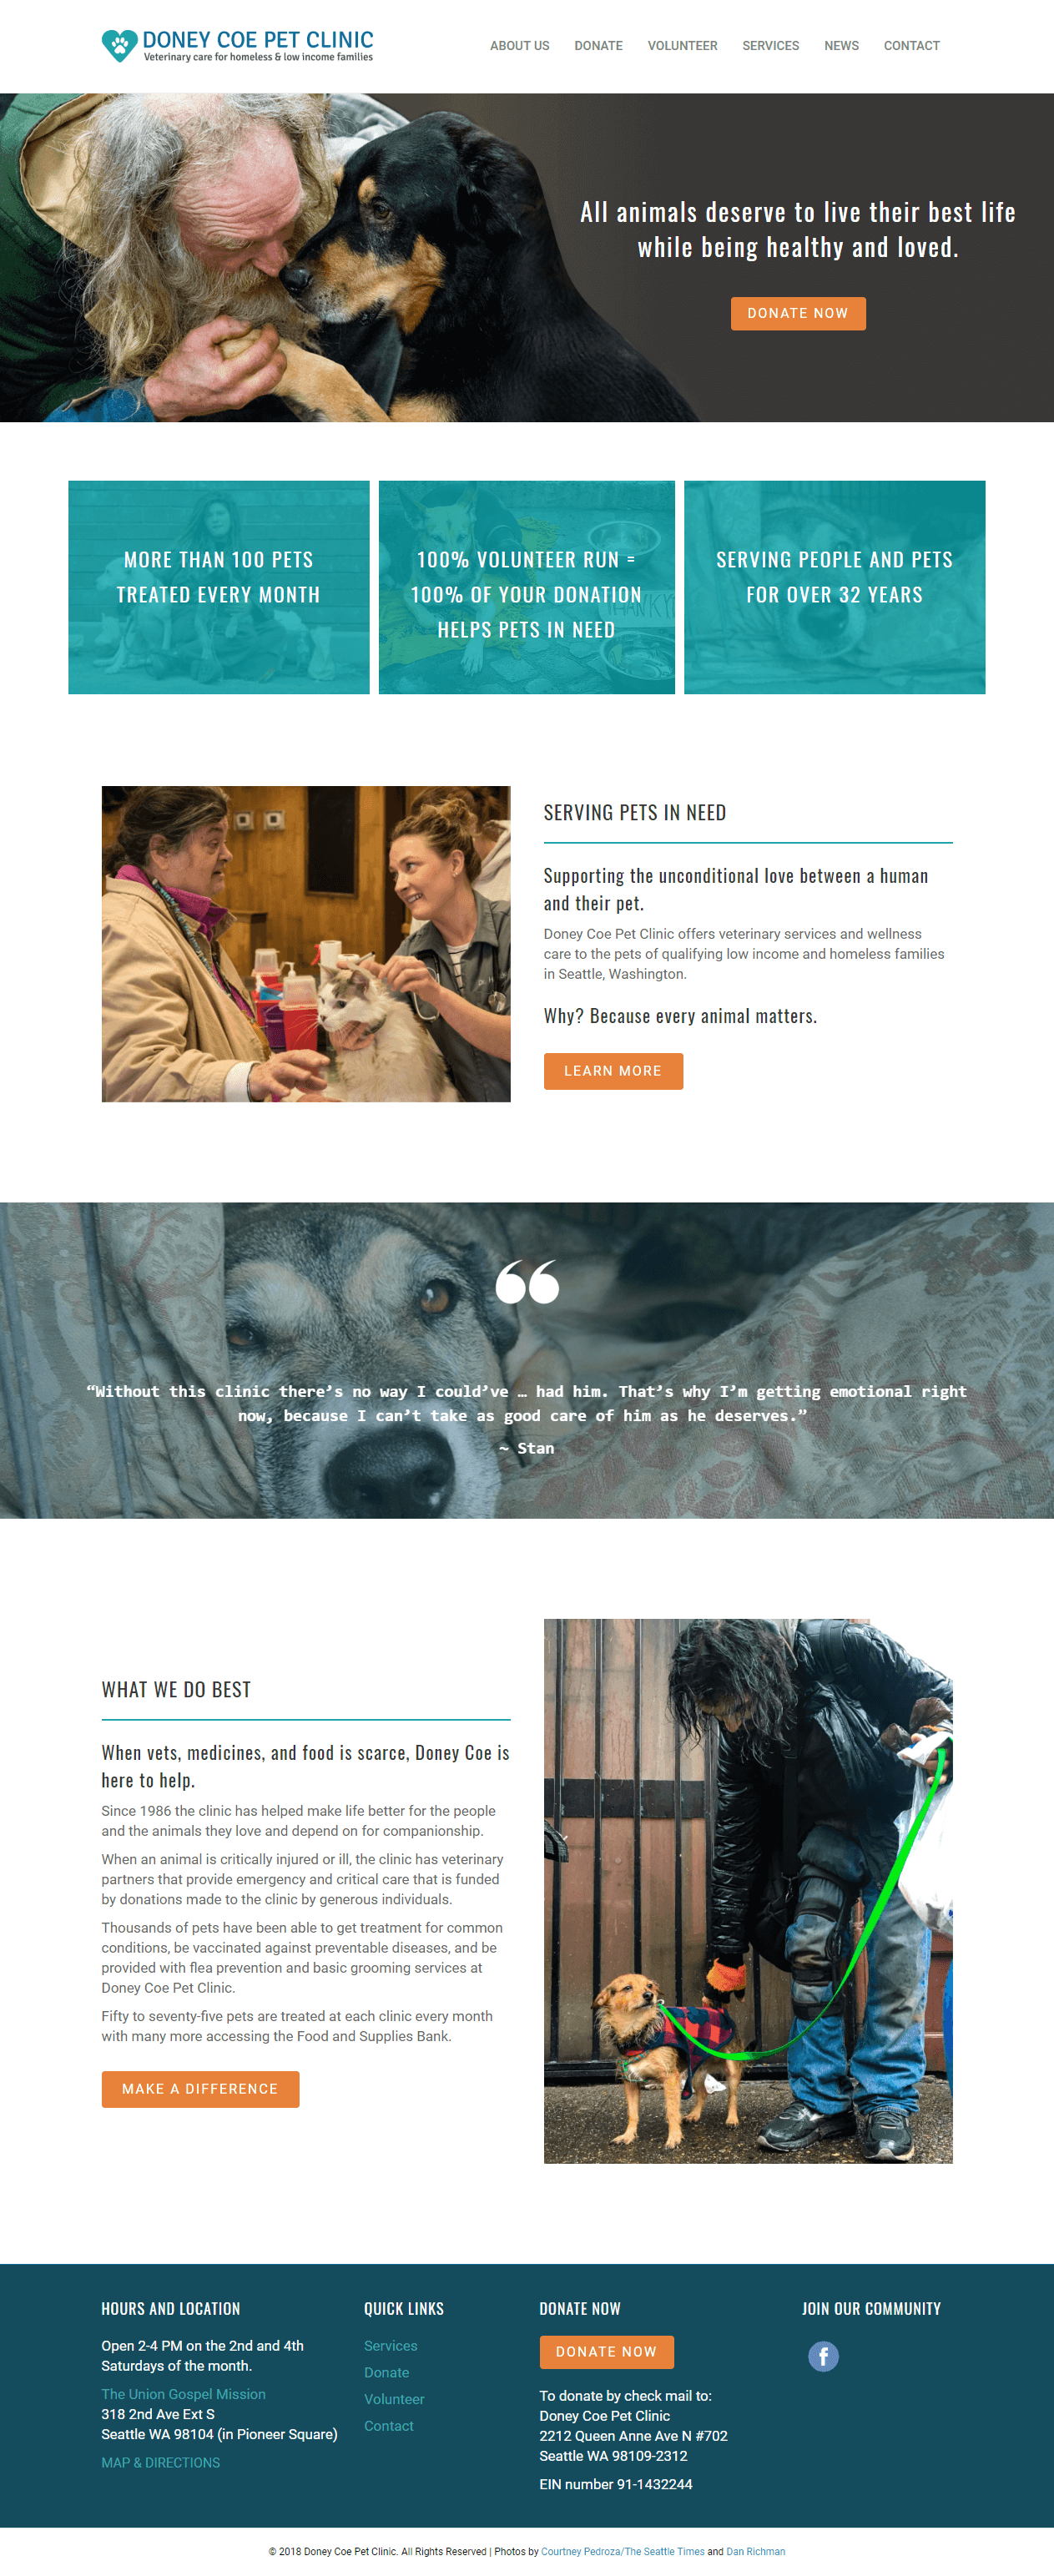 oney Coe Pet Clinic Seattle home page screen shot